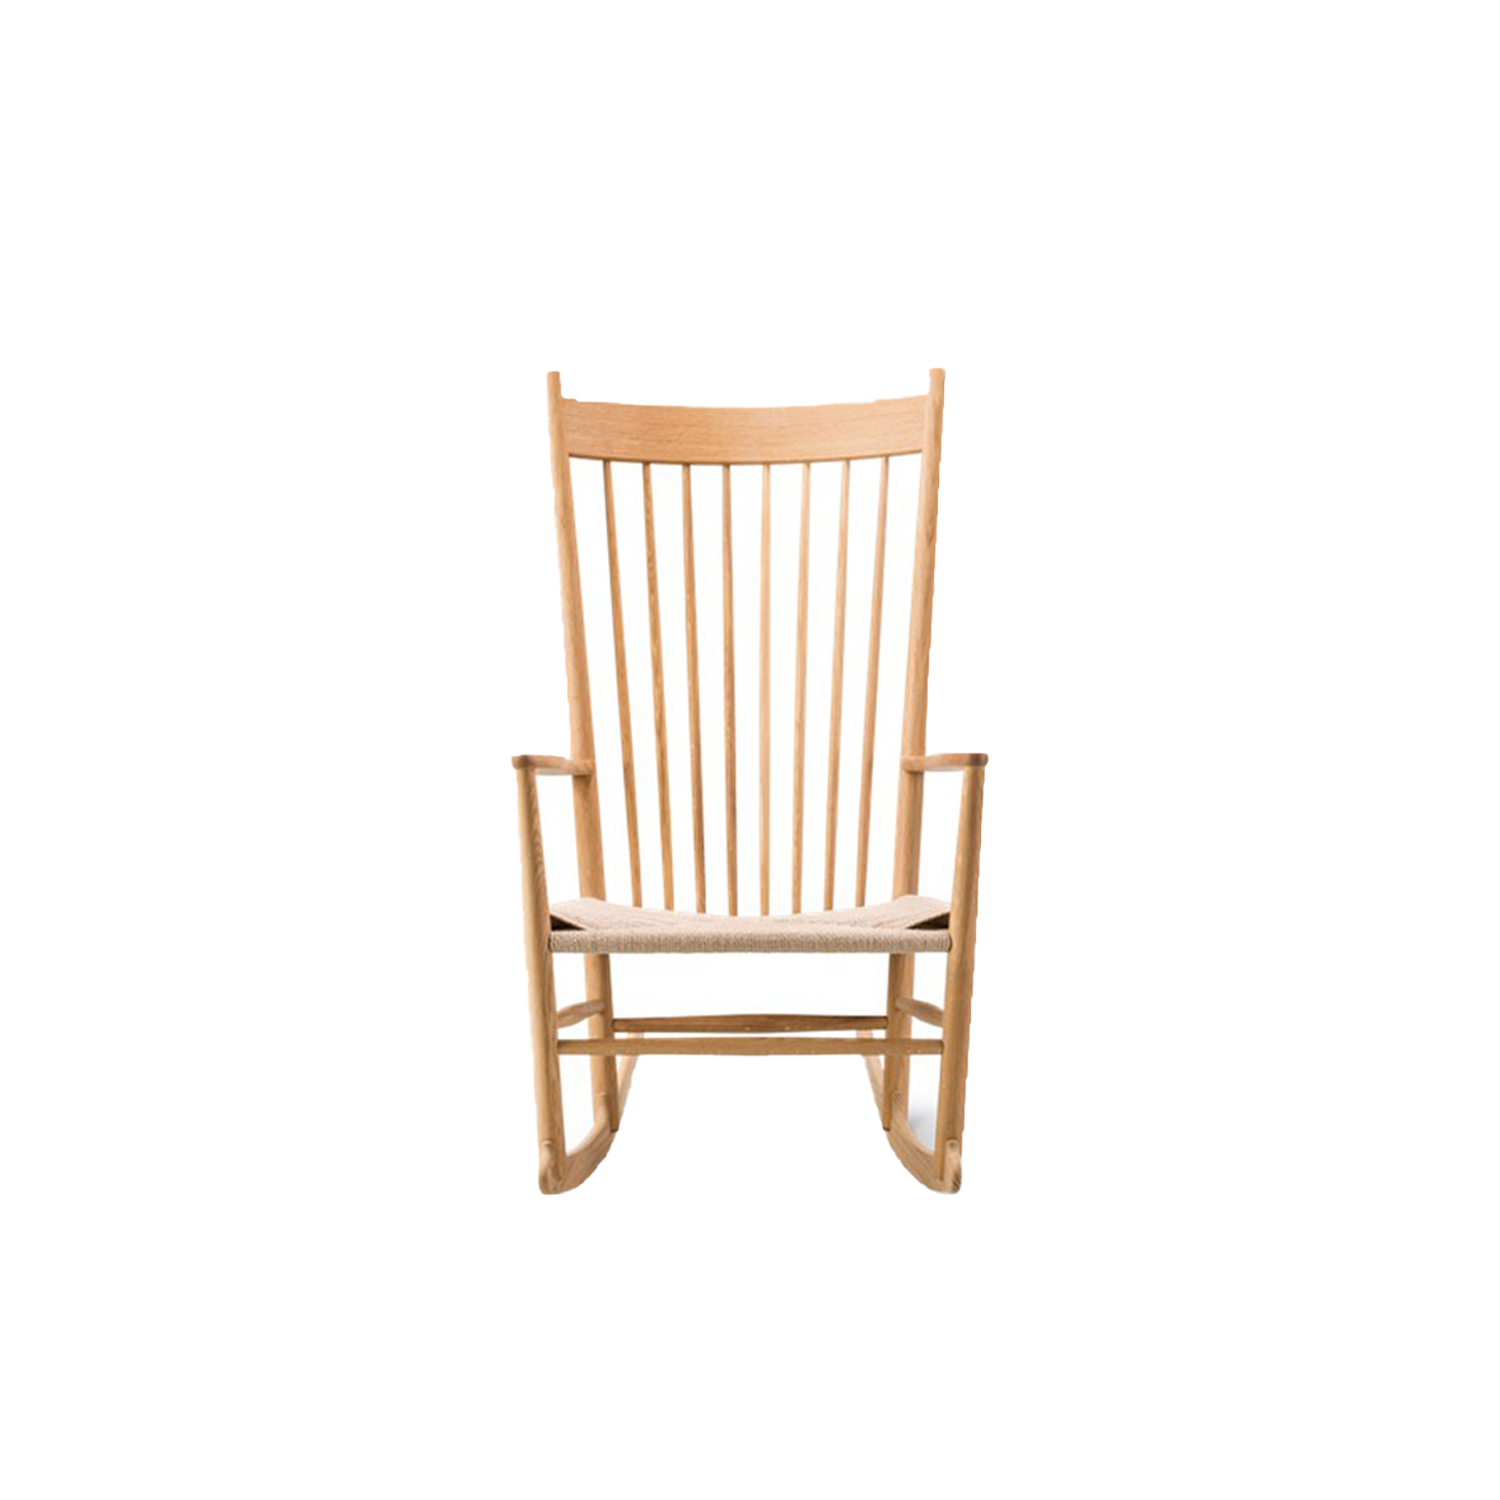 Wegner J16 Rocking Chair - Designed in 1944, Wegner 's rocker with the sensually curved arms was inspired by traditional Windsor and Shaker furniture, fused with Wegner's poetic lines.   | Matter of Stuff